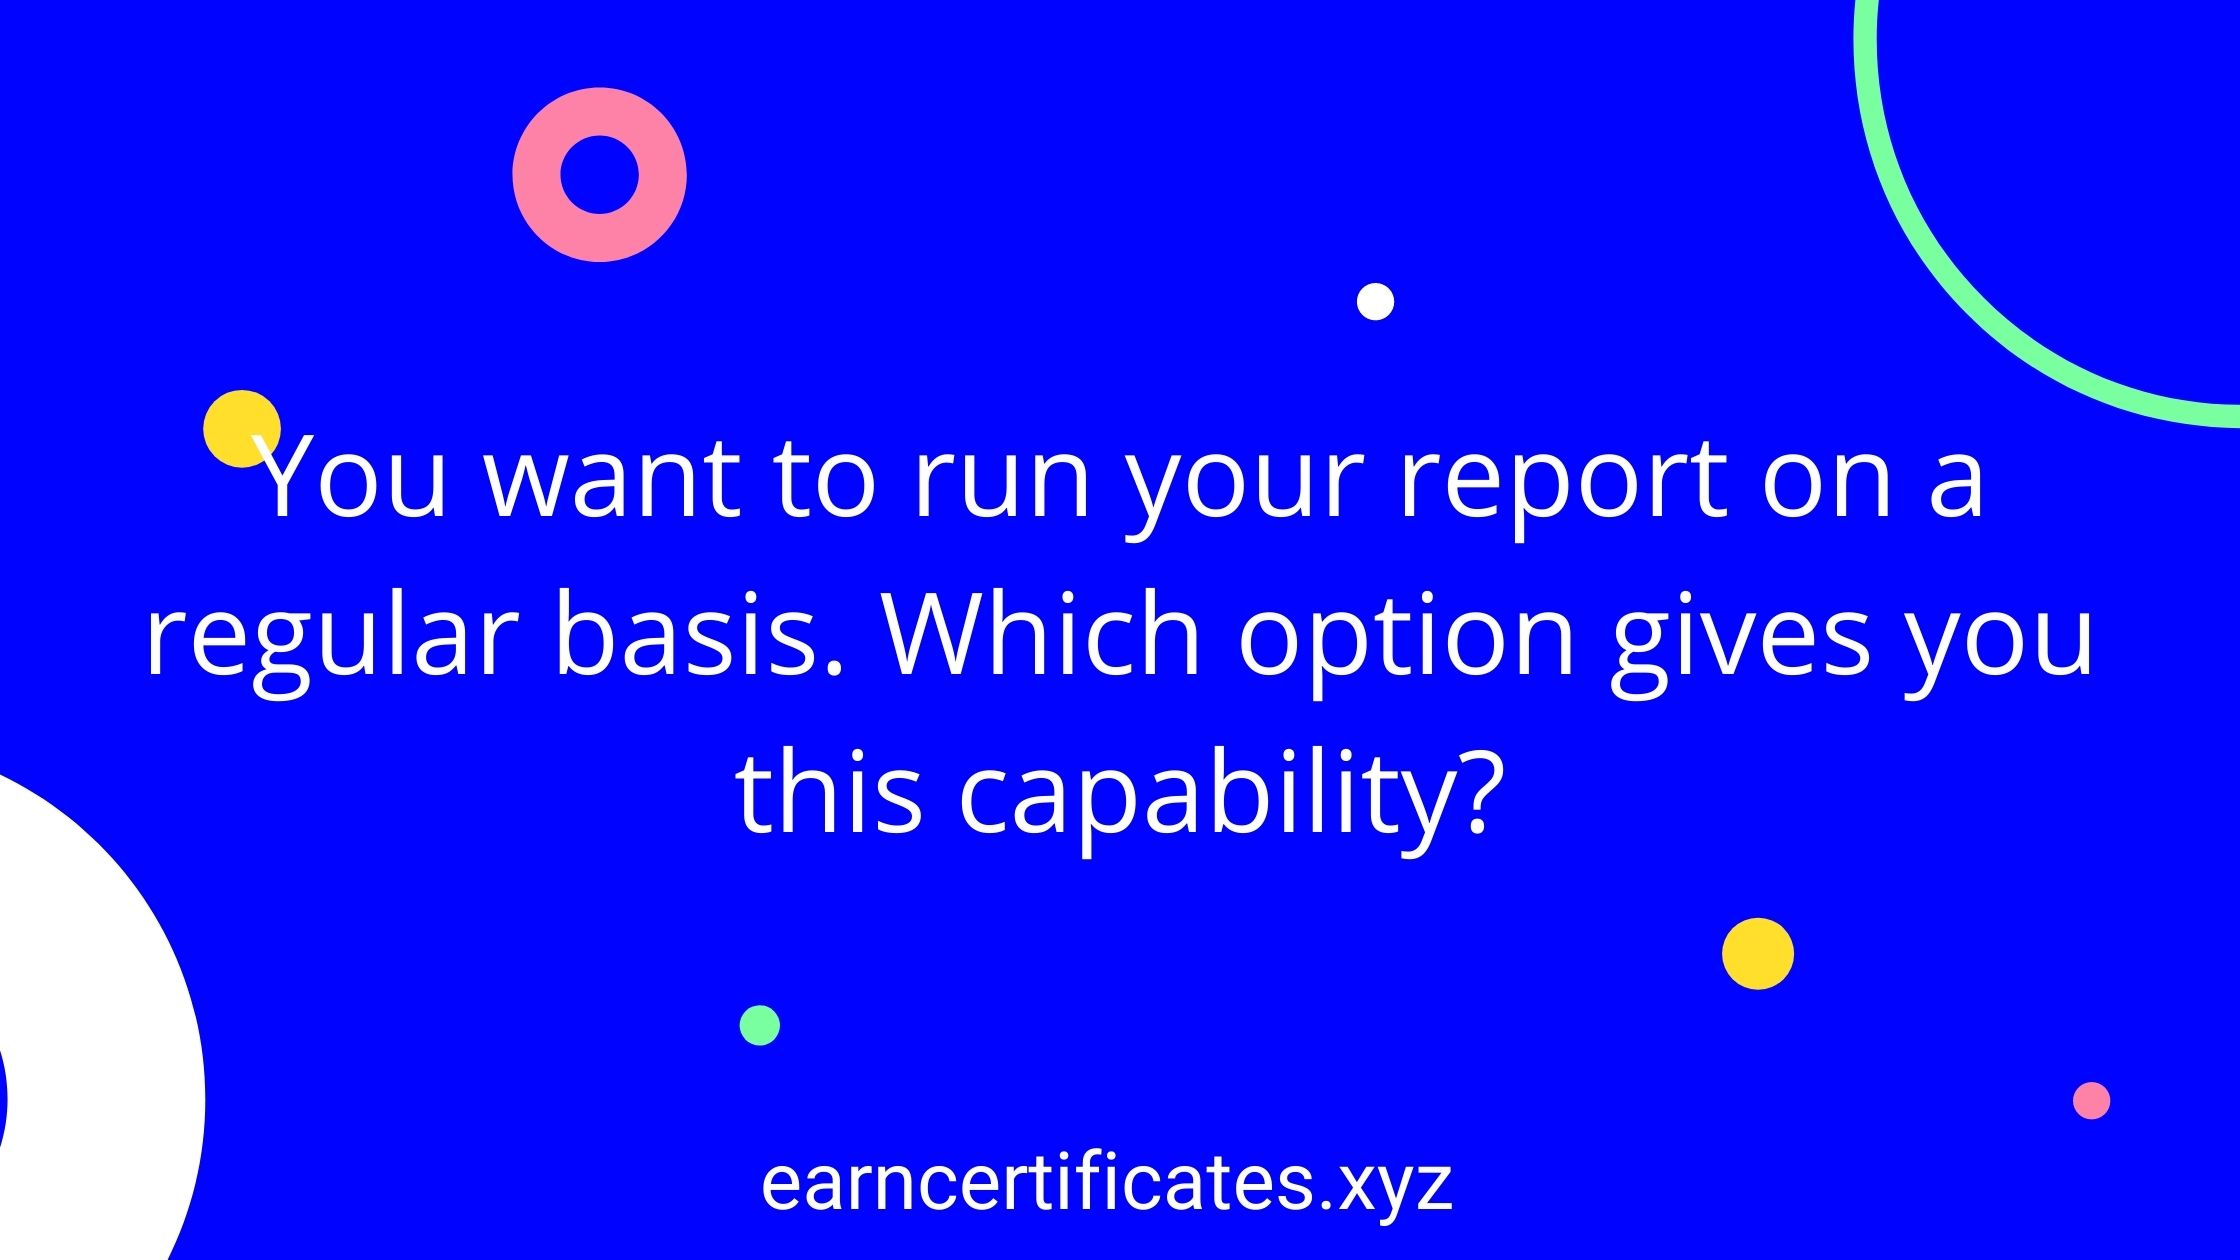 You want to run your report on a regular basis. Which option gives you this capability?